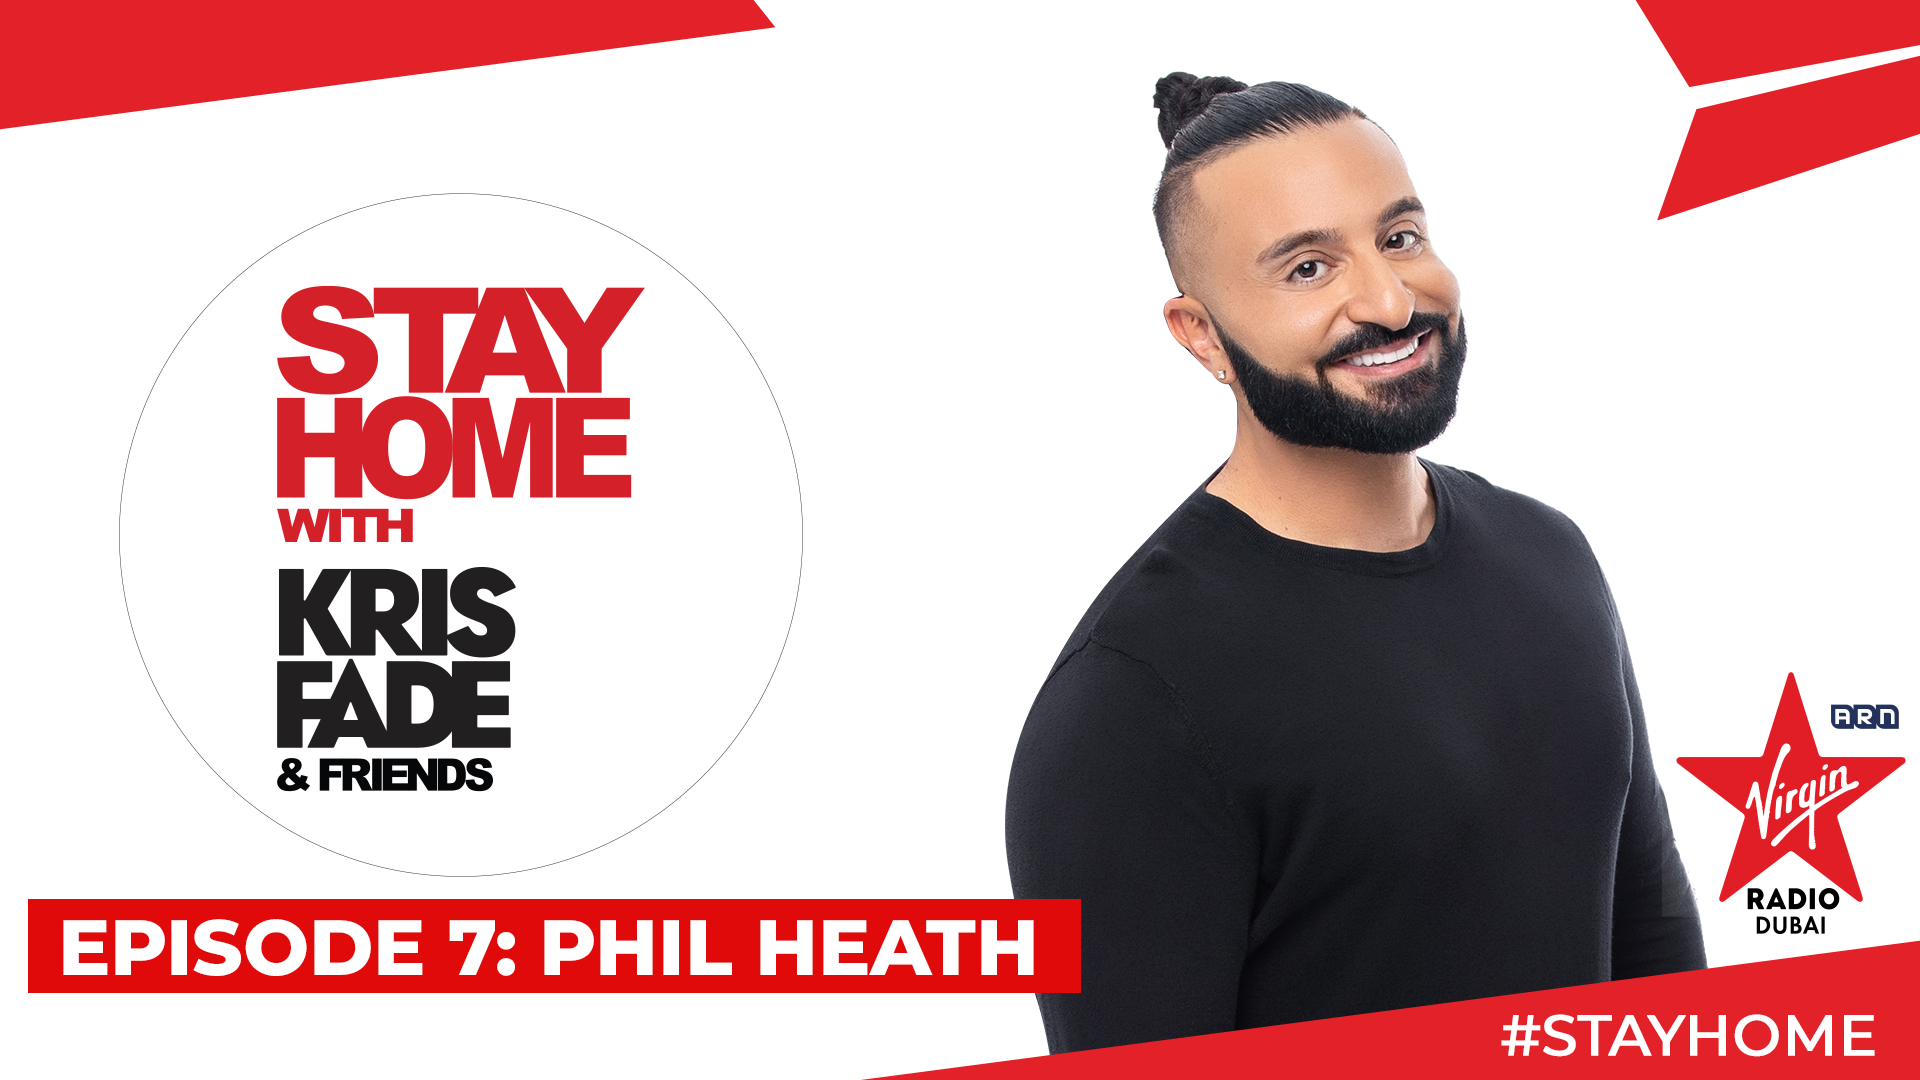 Stay Home with Kris Fade & Friends - Phil Heath